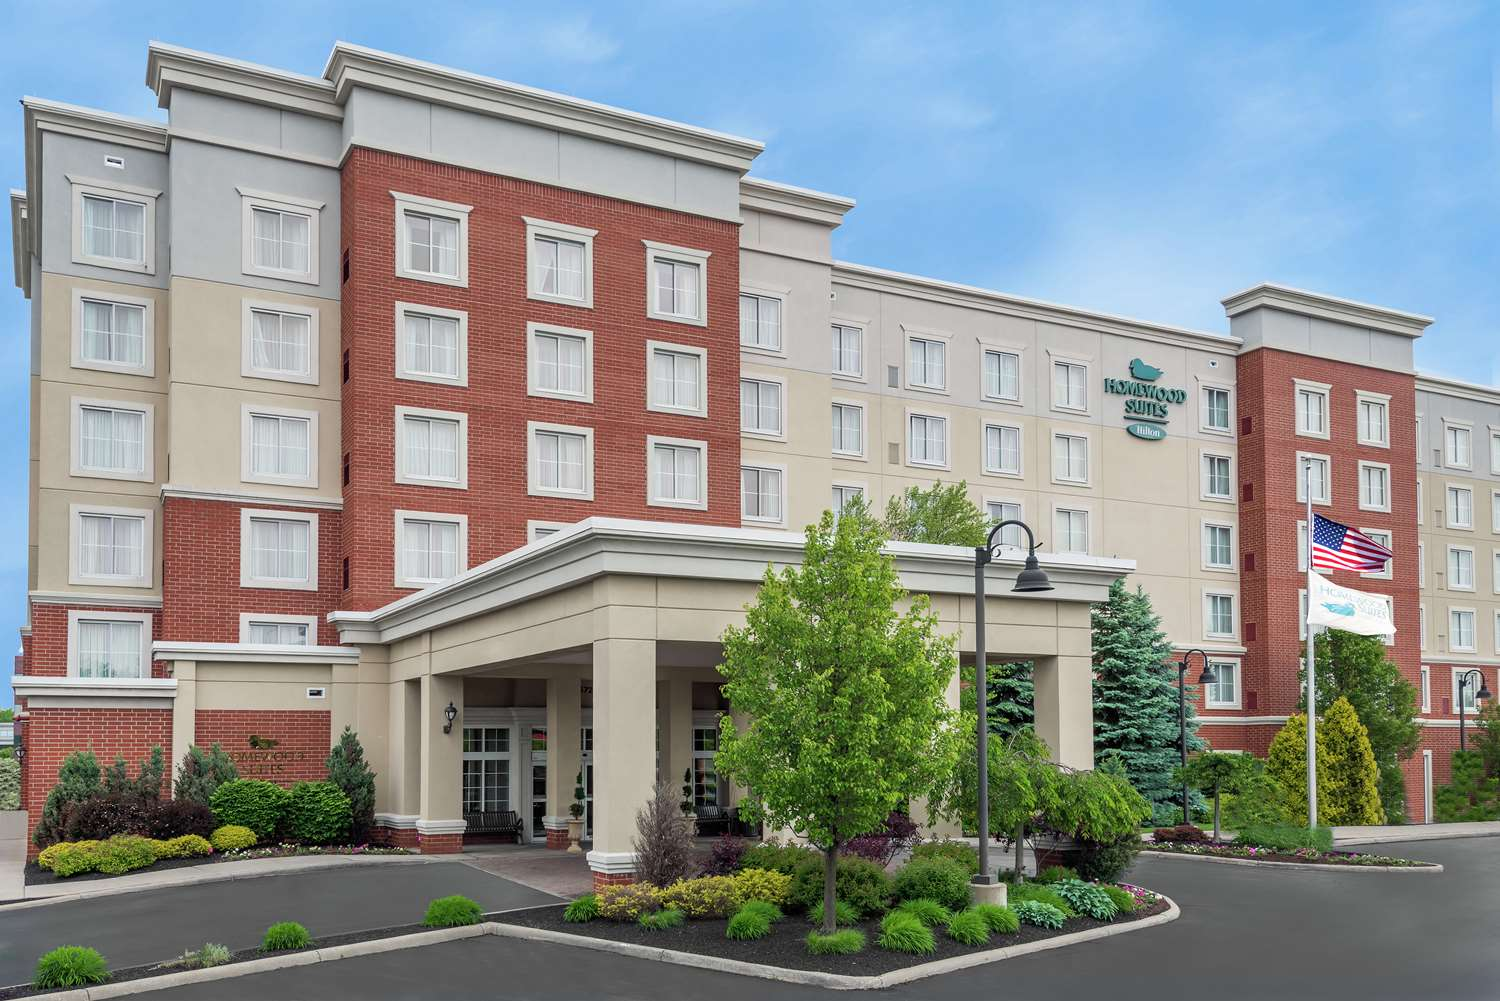 Homewood Suites by Hilton Beachwood